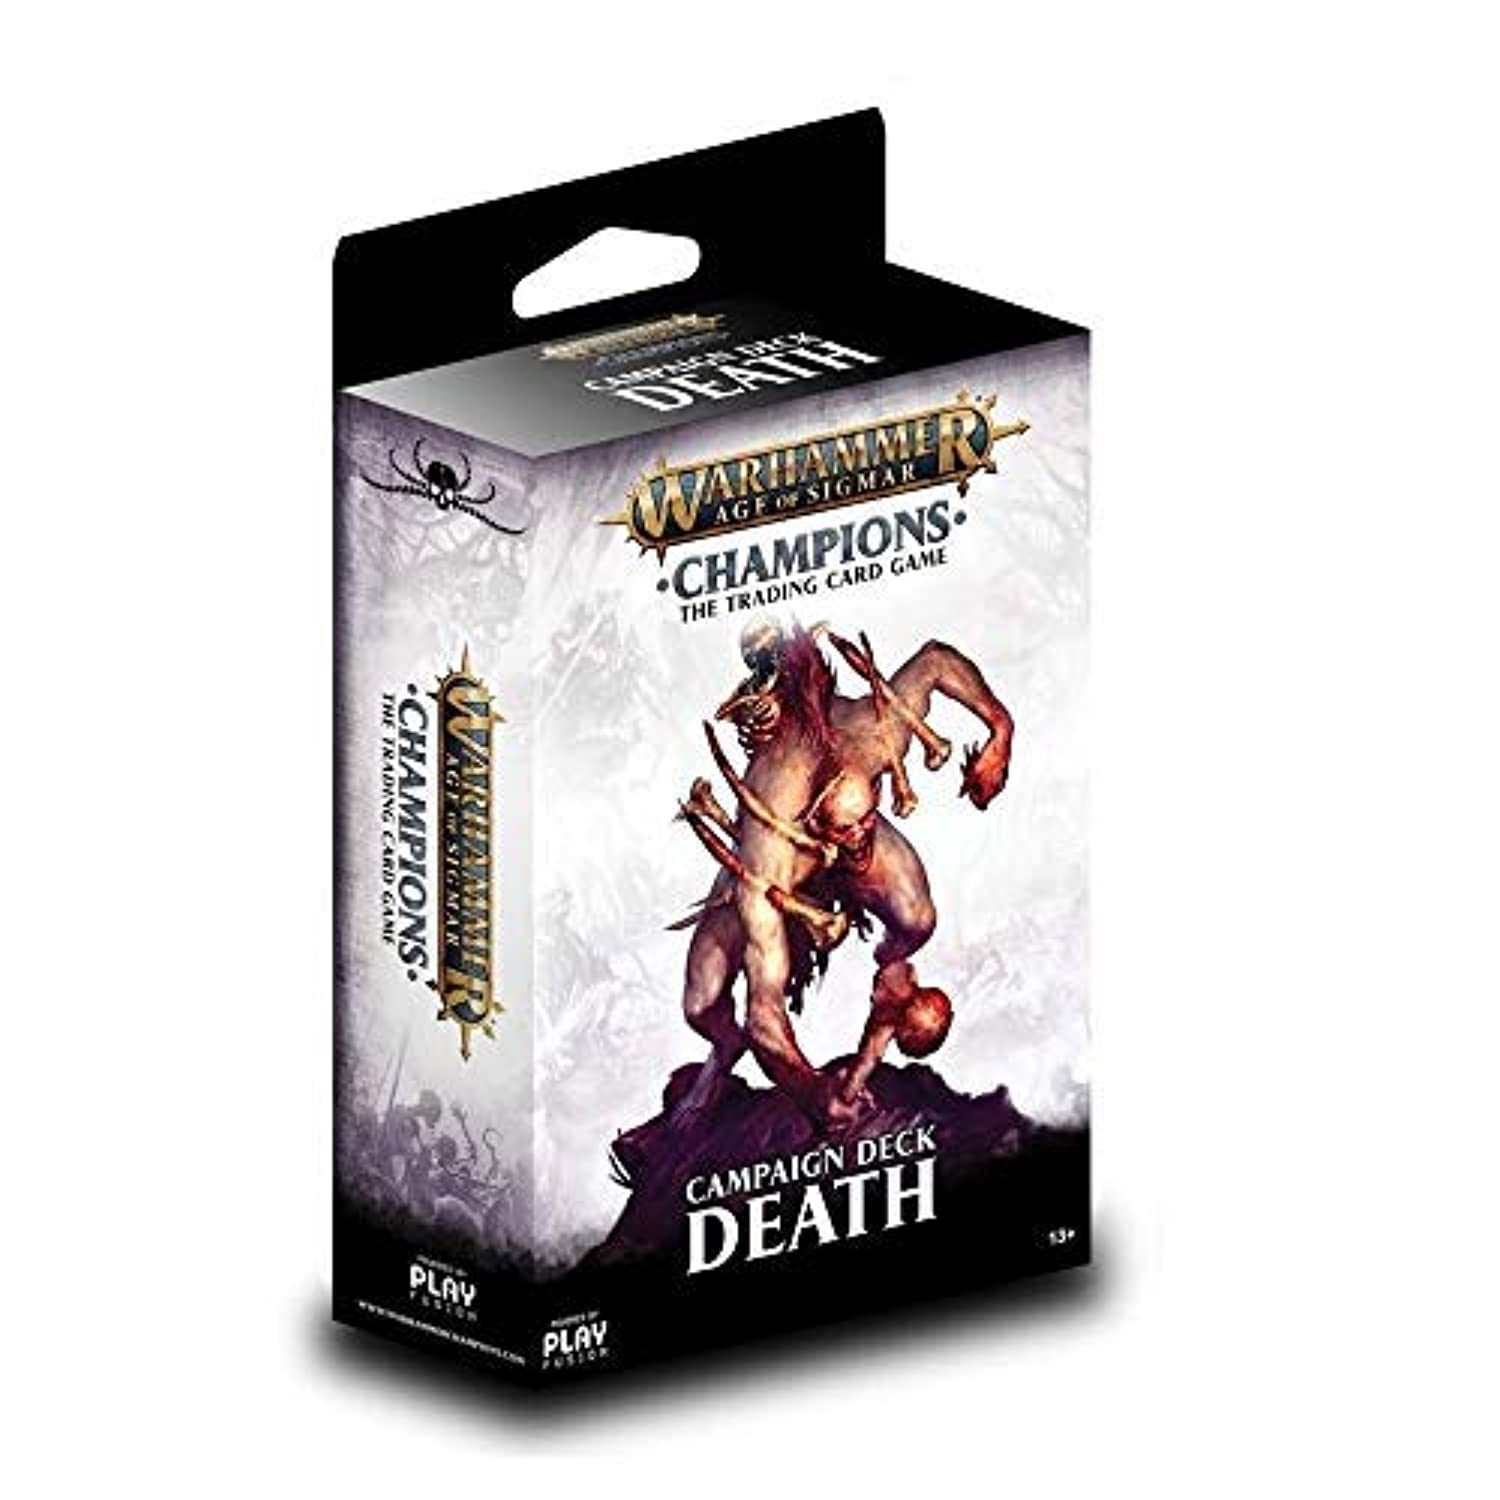 Playfusion Death Campaign Deck Warhammer Age of Sigmar Champions TCG [並行輸入品]